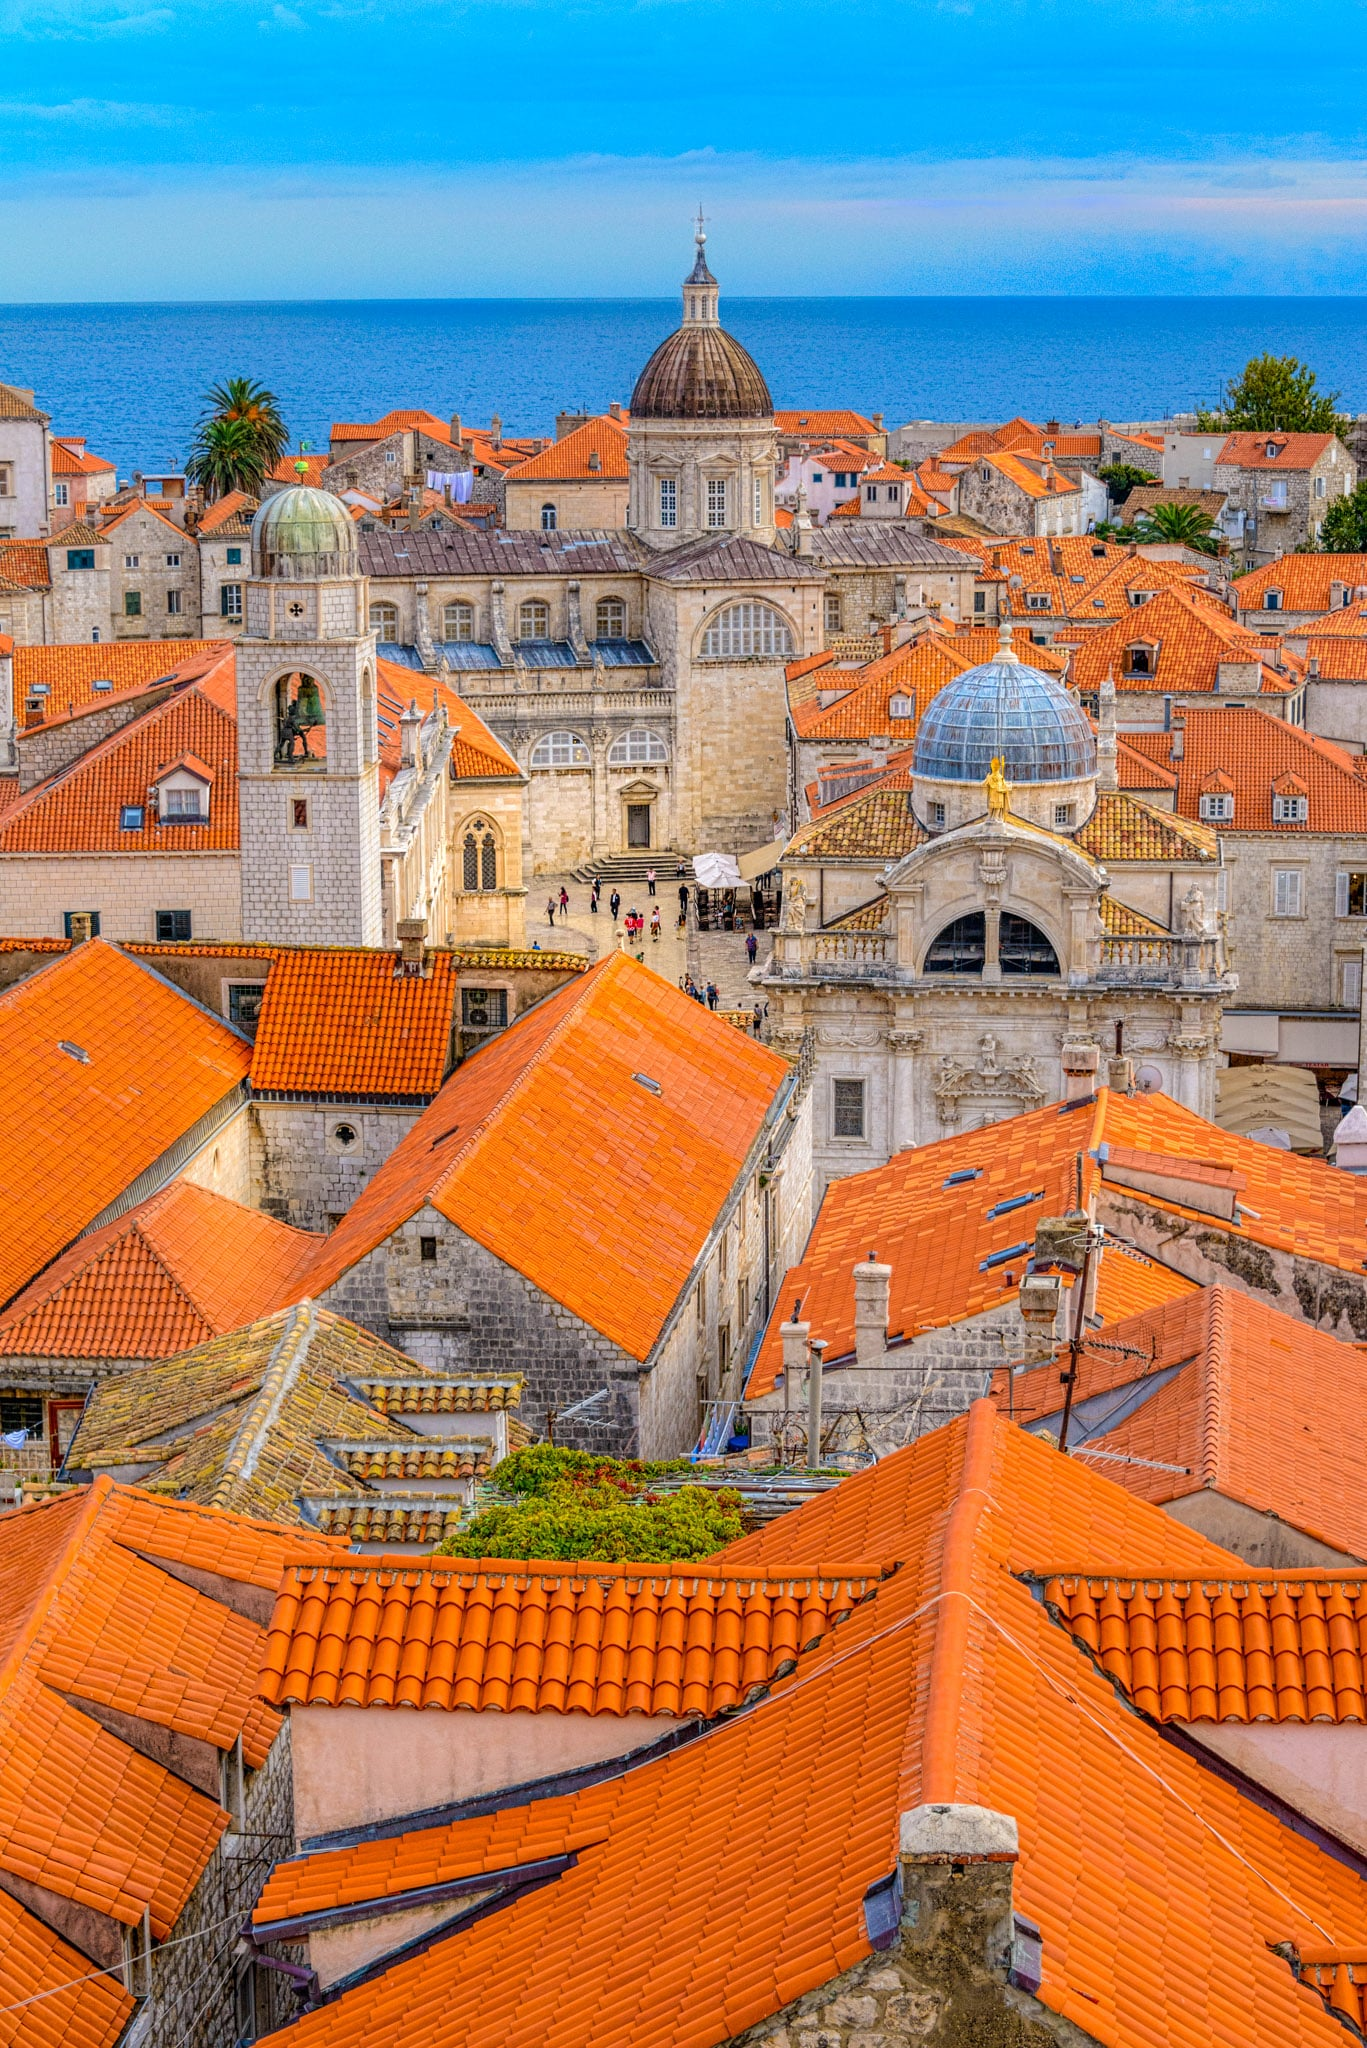 A view overlooking Dubrovnik Old Town's red-tiled roofs with the Church of St. Blaise, the Dubrovnik Clock Tower, the Dubrovnik Cathedral, and the Adriatic in the distance.